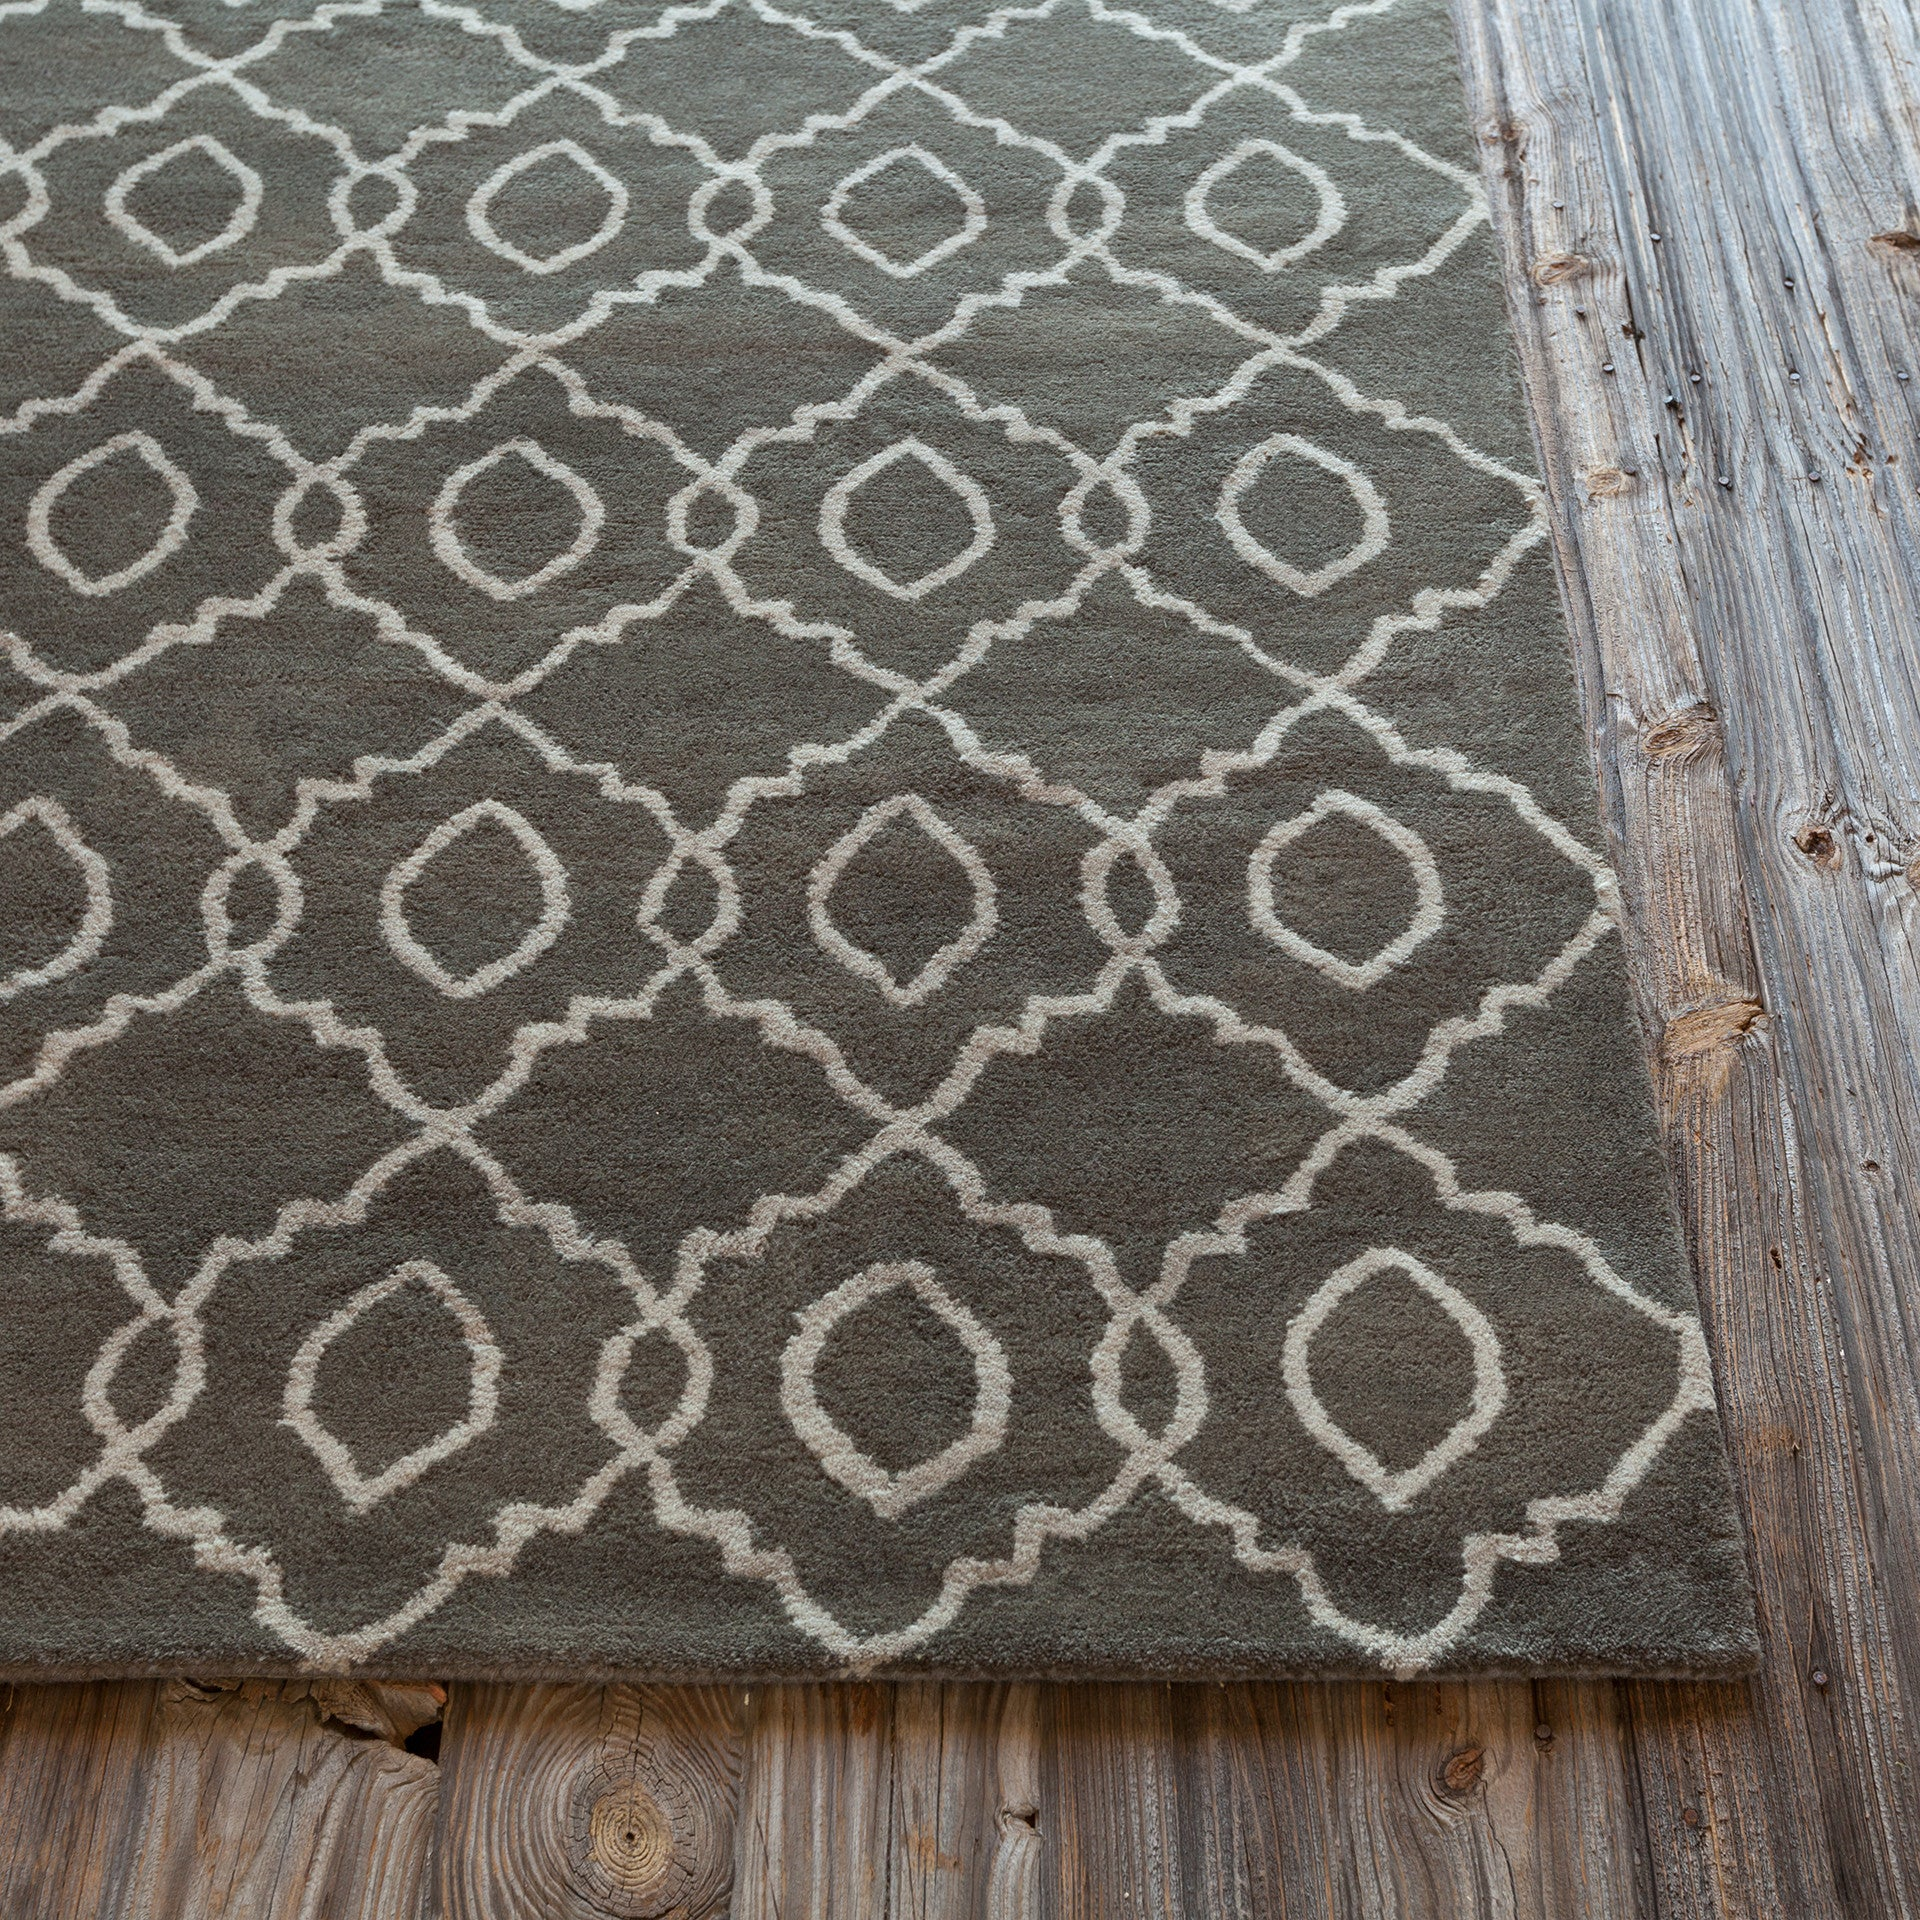 Stella collection hand tufted area rug in charcoal cream